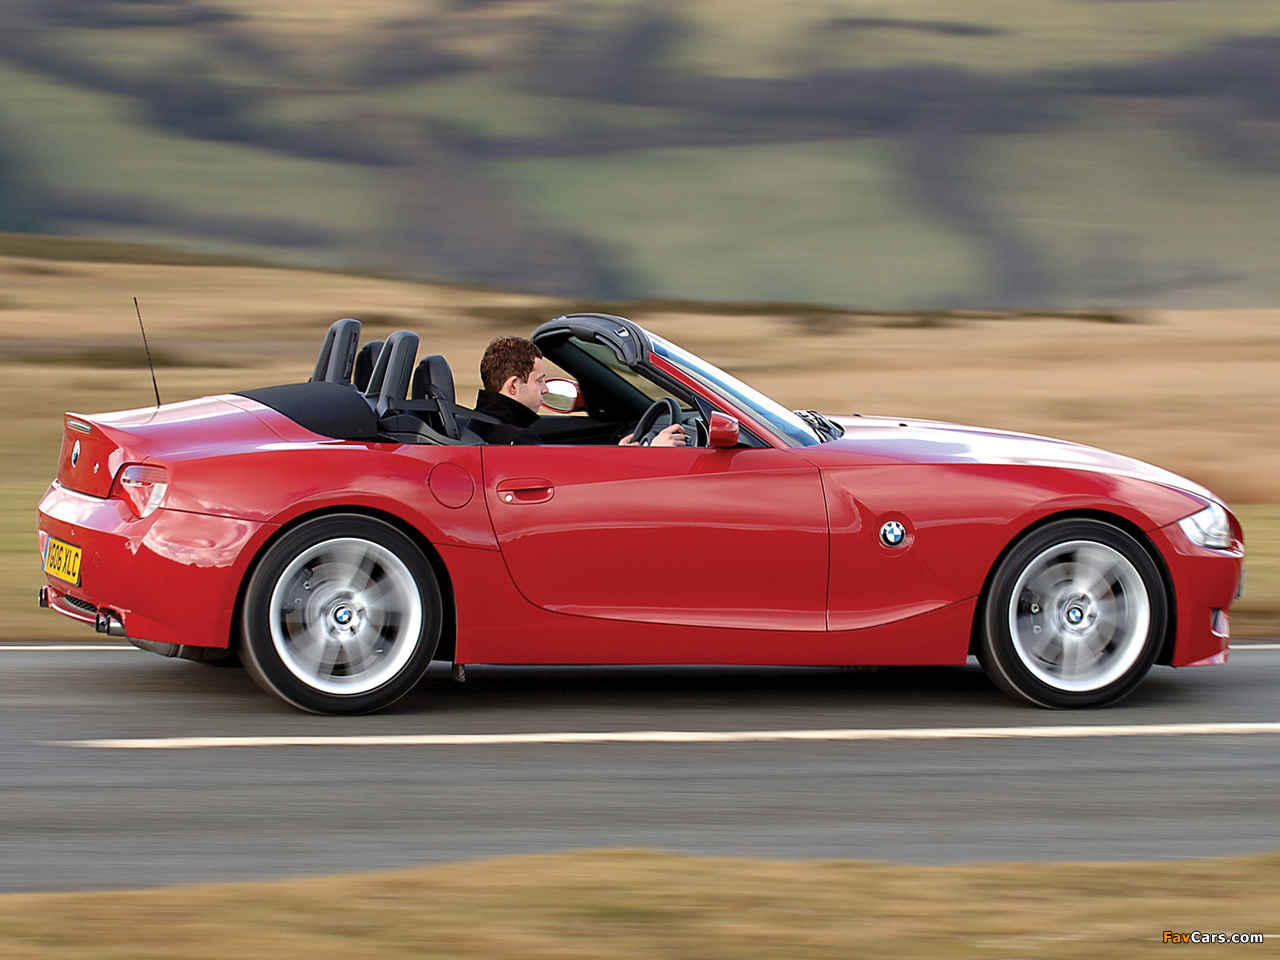 Wallpapers Of Bmw Z4 M Roadster Uk Spec E85 2006 08 1280x960